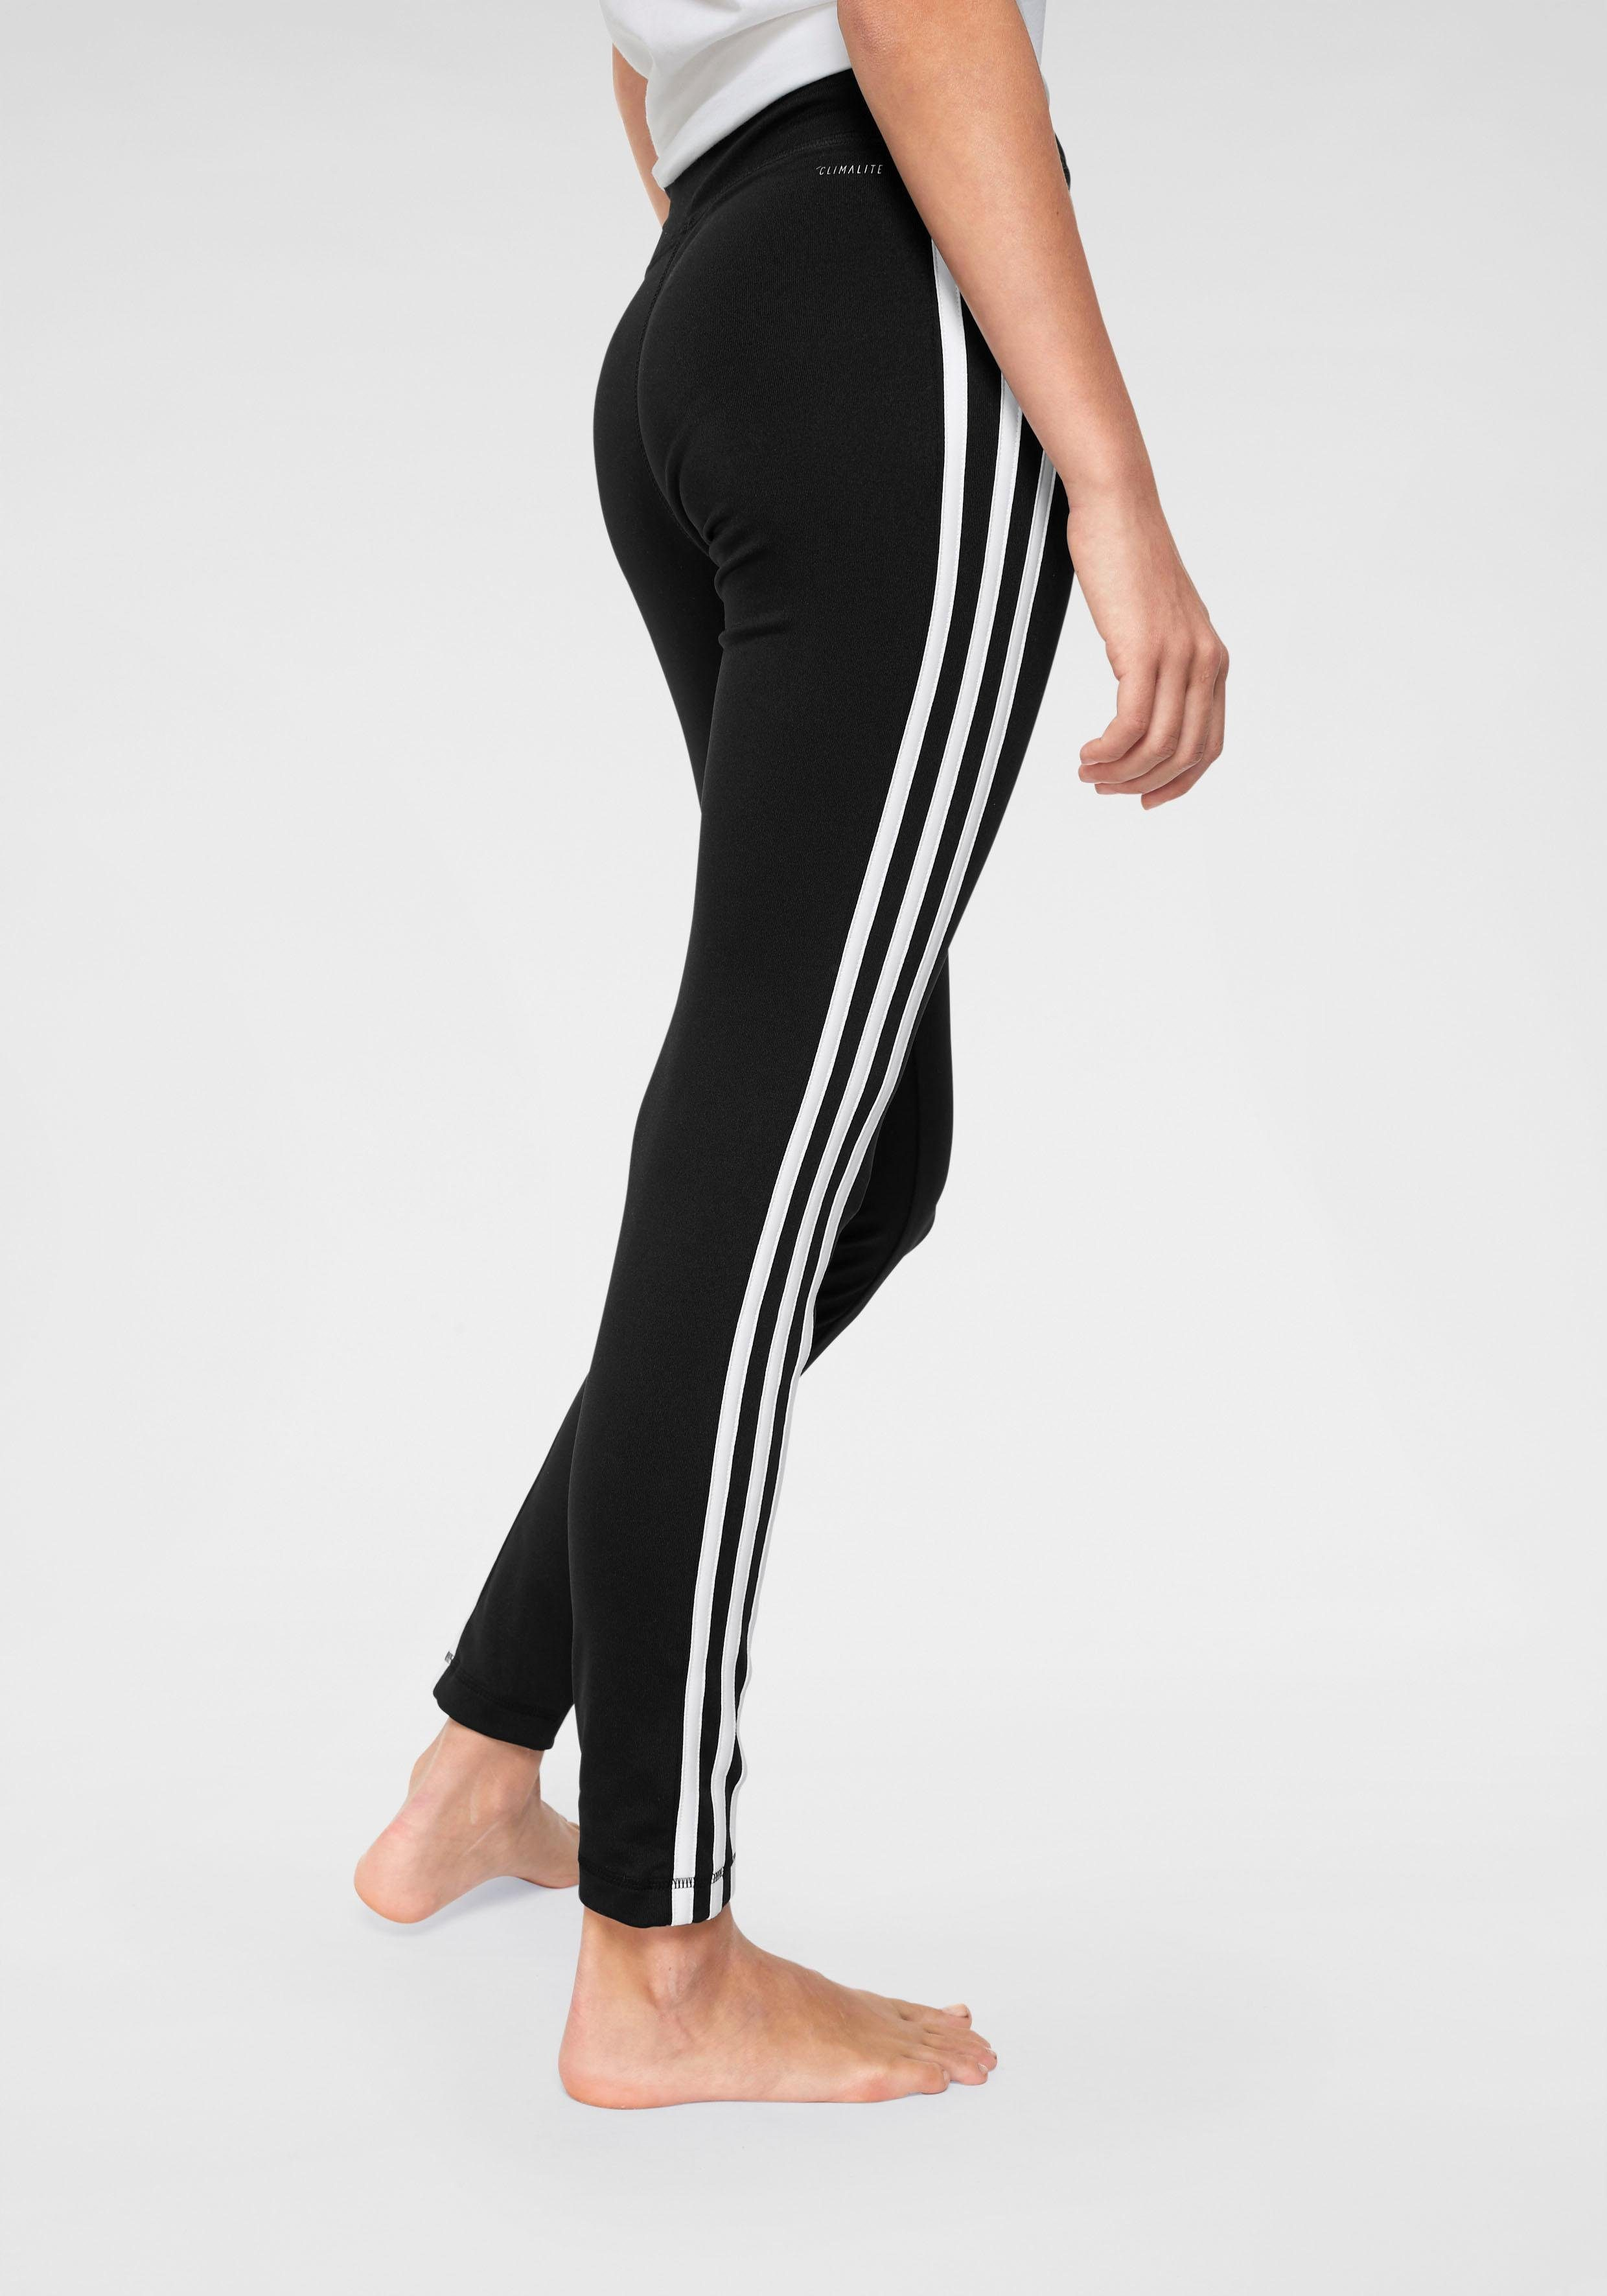 functionele tights »YOUNG GIRL TRAINING EQUIPMENT 3 STRIPES LONG TIGHT«